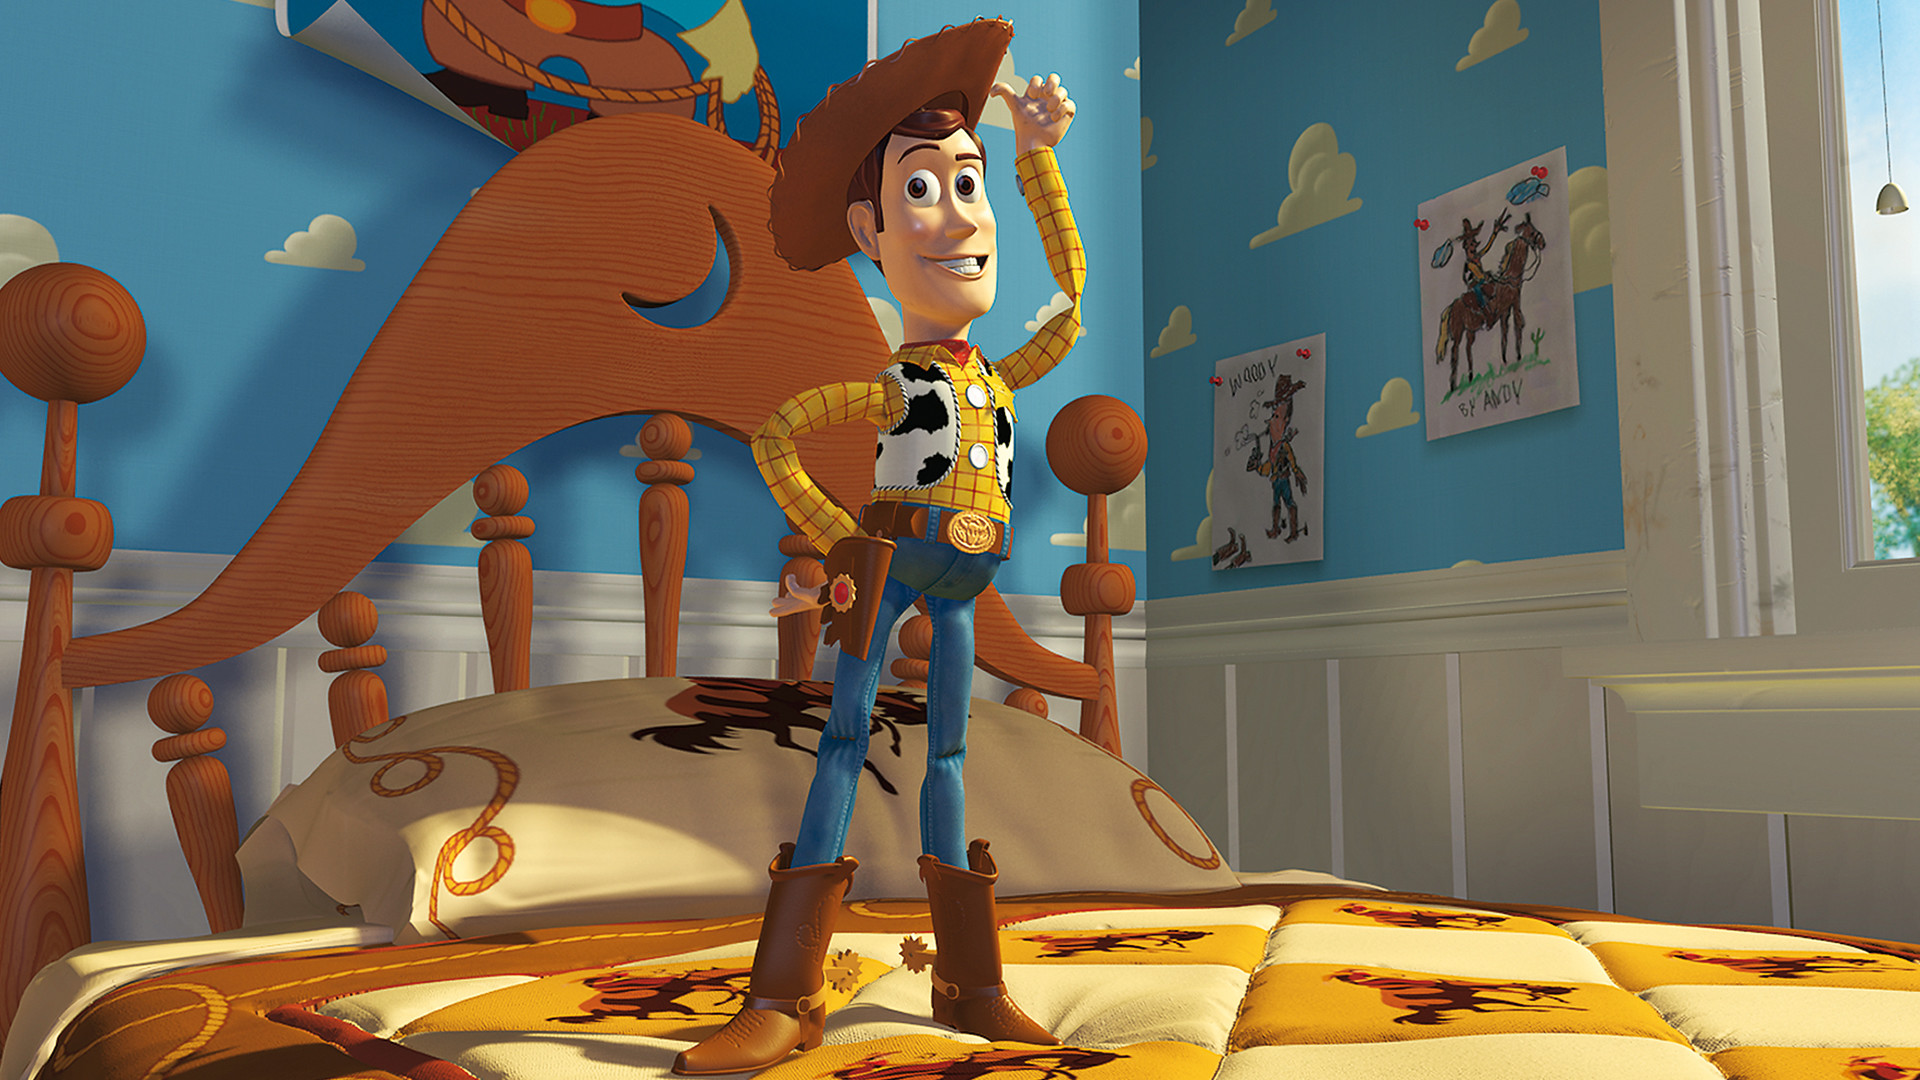 1920x1080 29 HD Toy Story Movie Wallpapers